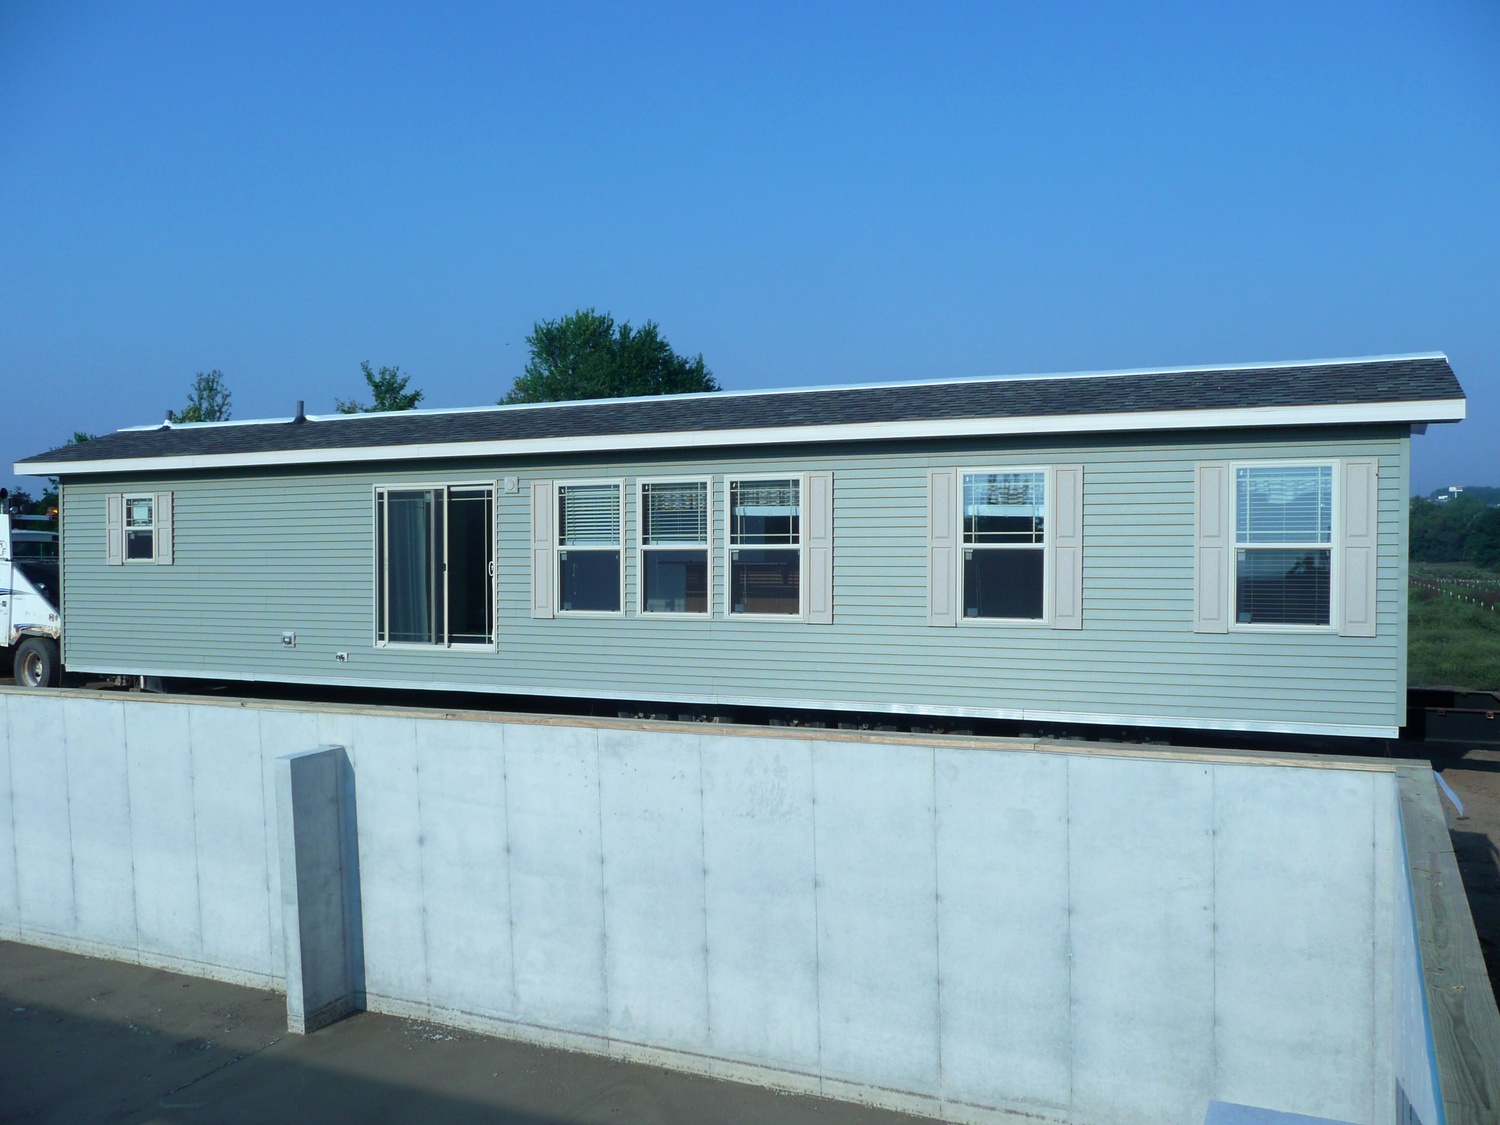 Sharp Mobile Homes - Experience Matters